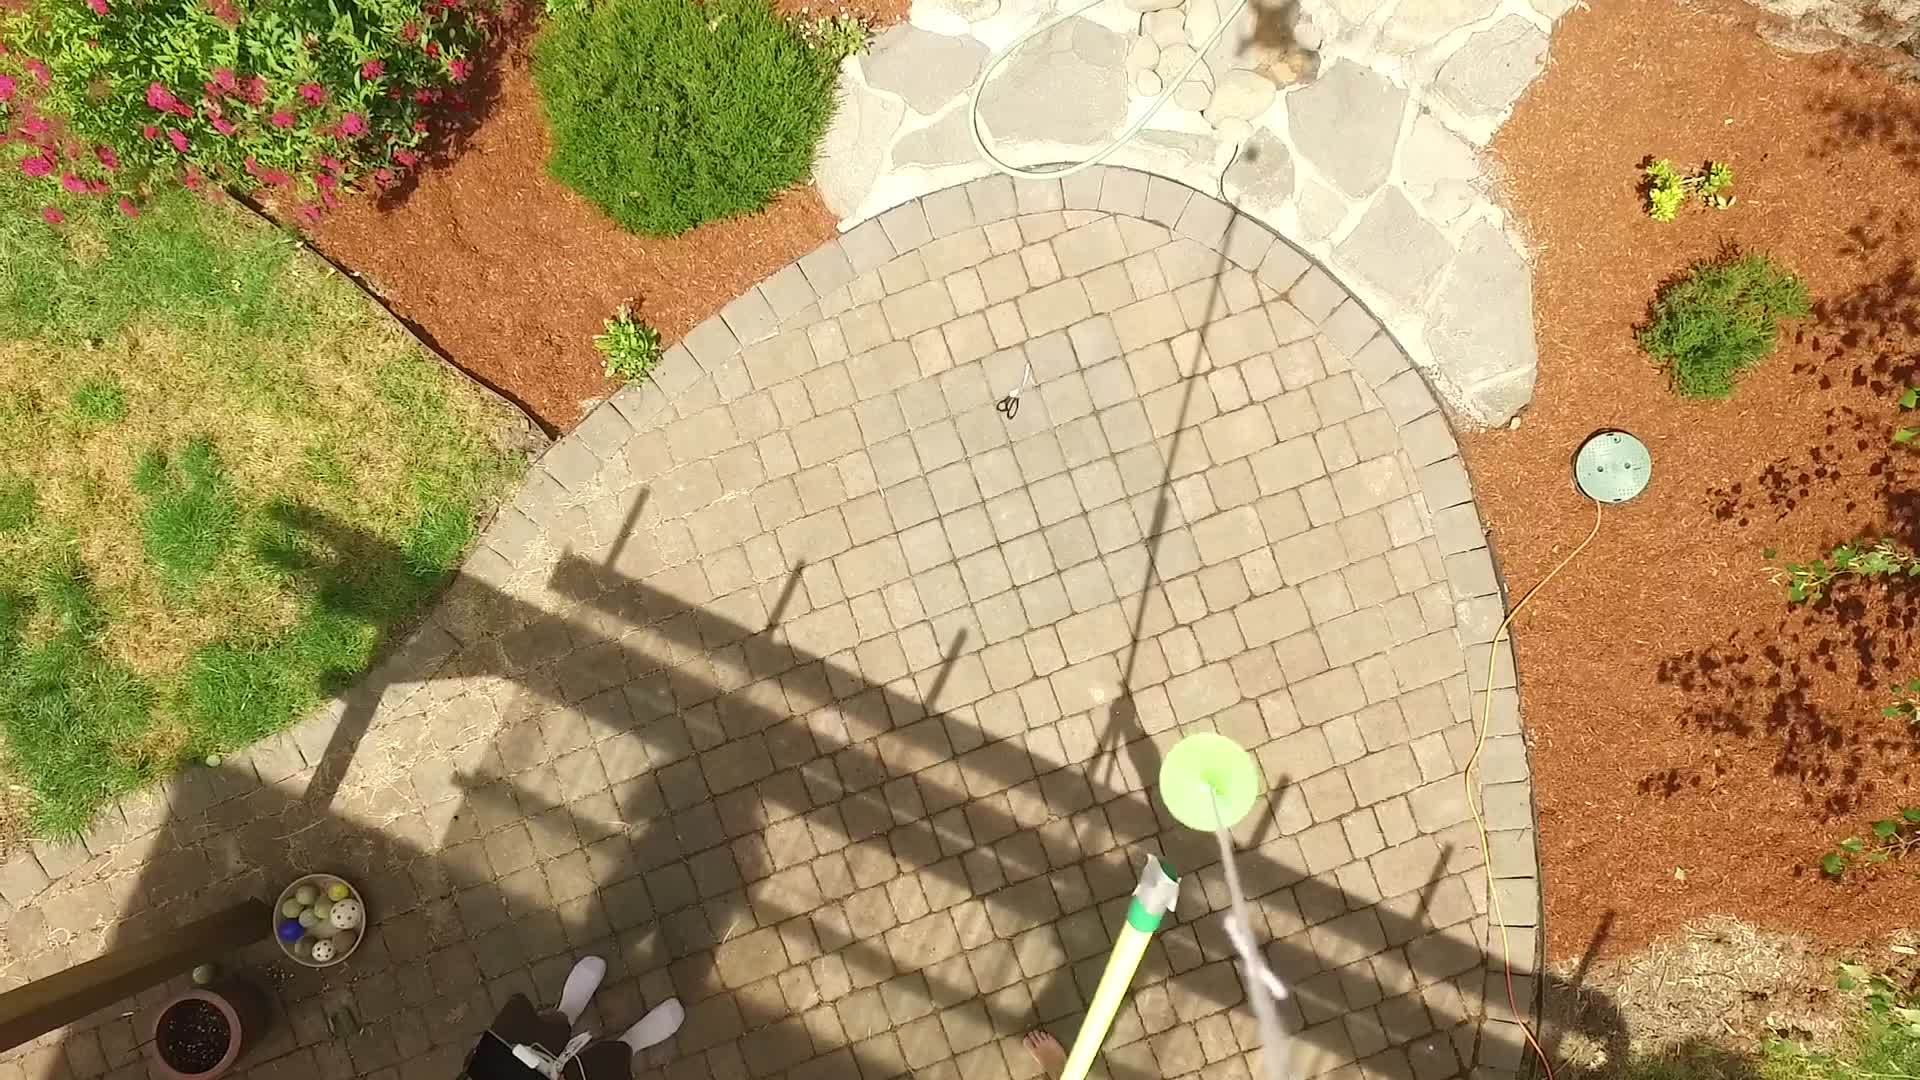 djiphantom, Popping a balloon attached to a drone GIFs